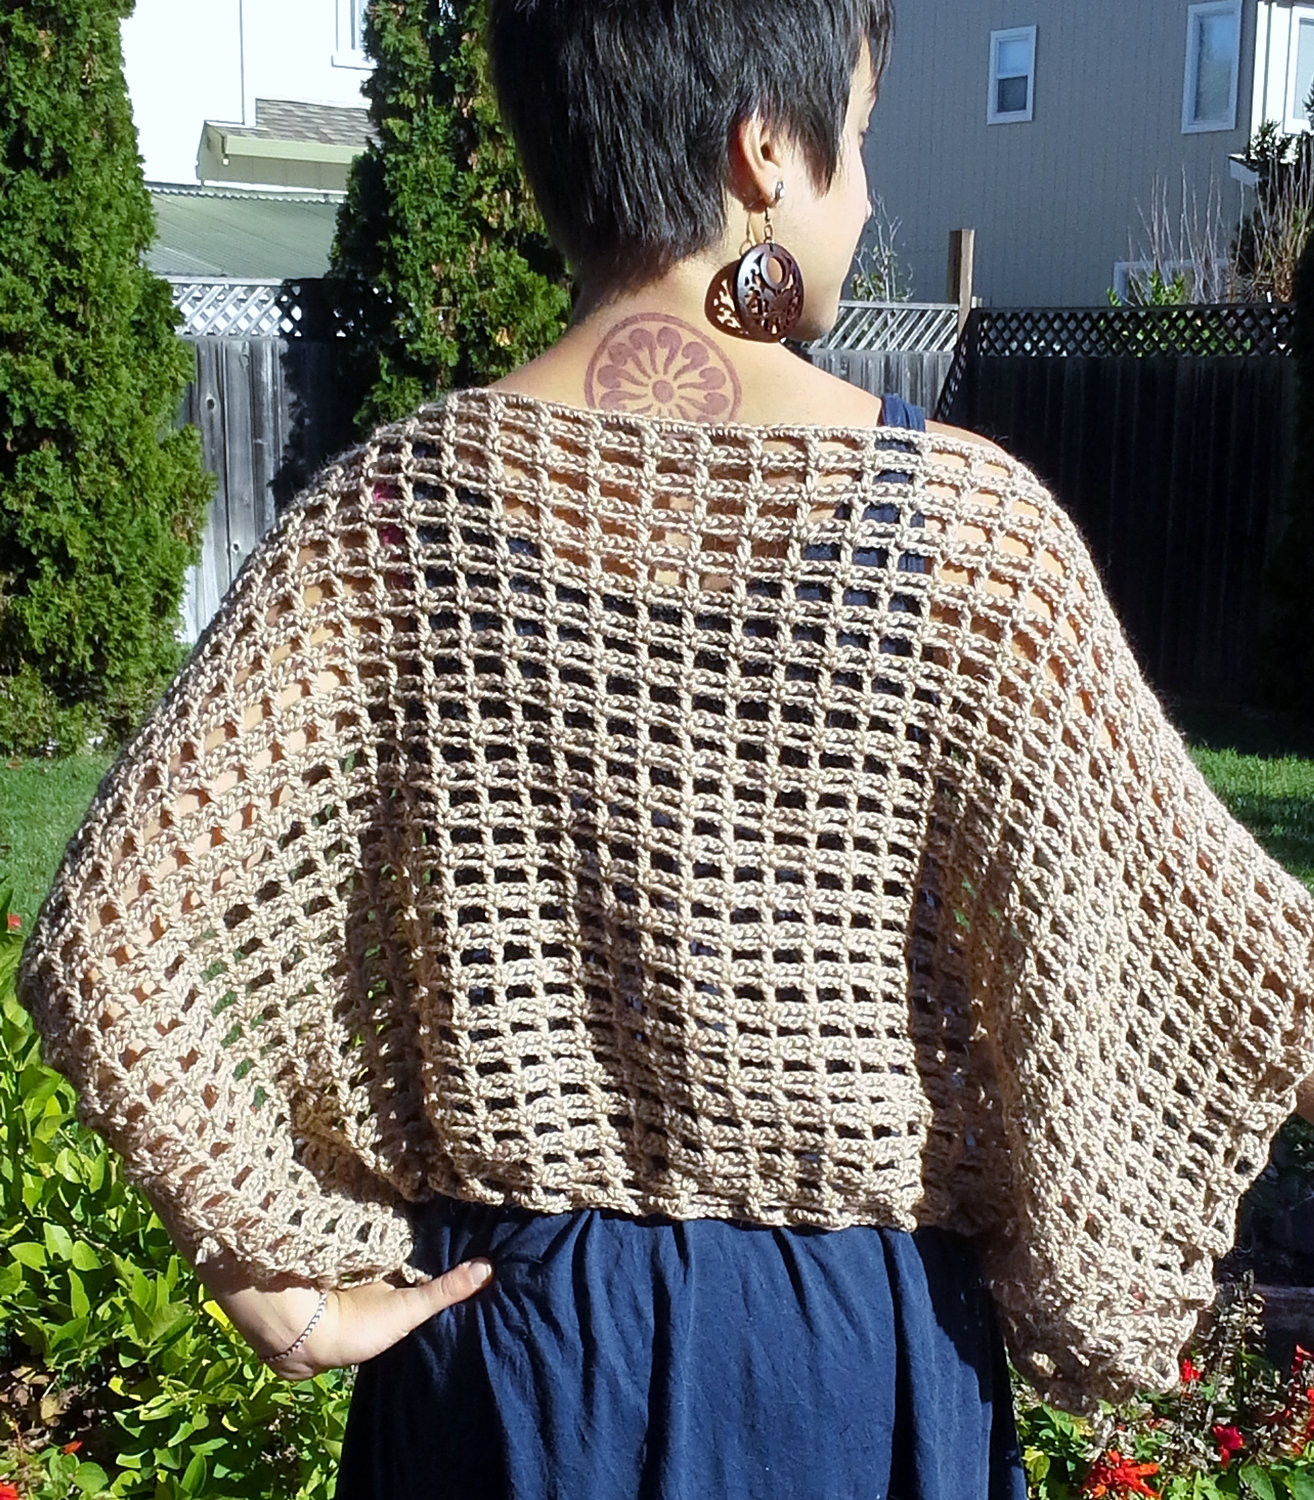 Easy Crochet Poncho Pattern Awesome Crochet Poncho Sweater Pattern the Not A Poncho top Pattern Of Amazing 43 Pics Easy Crochet Poncho Pattern